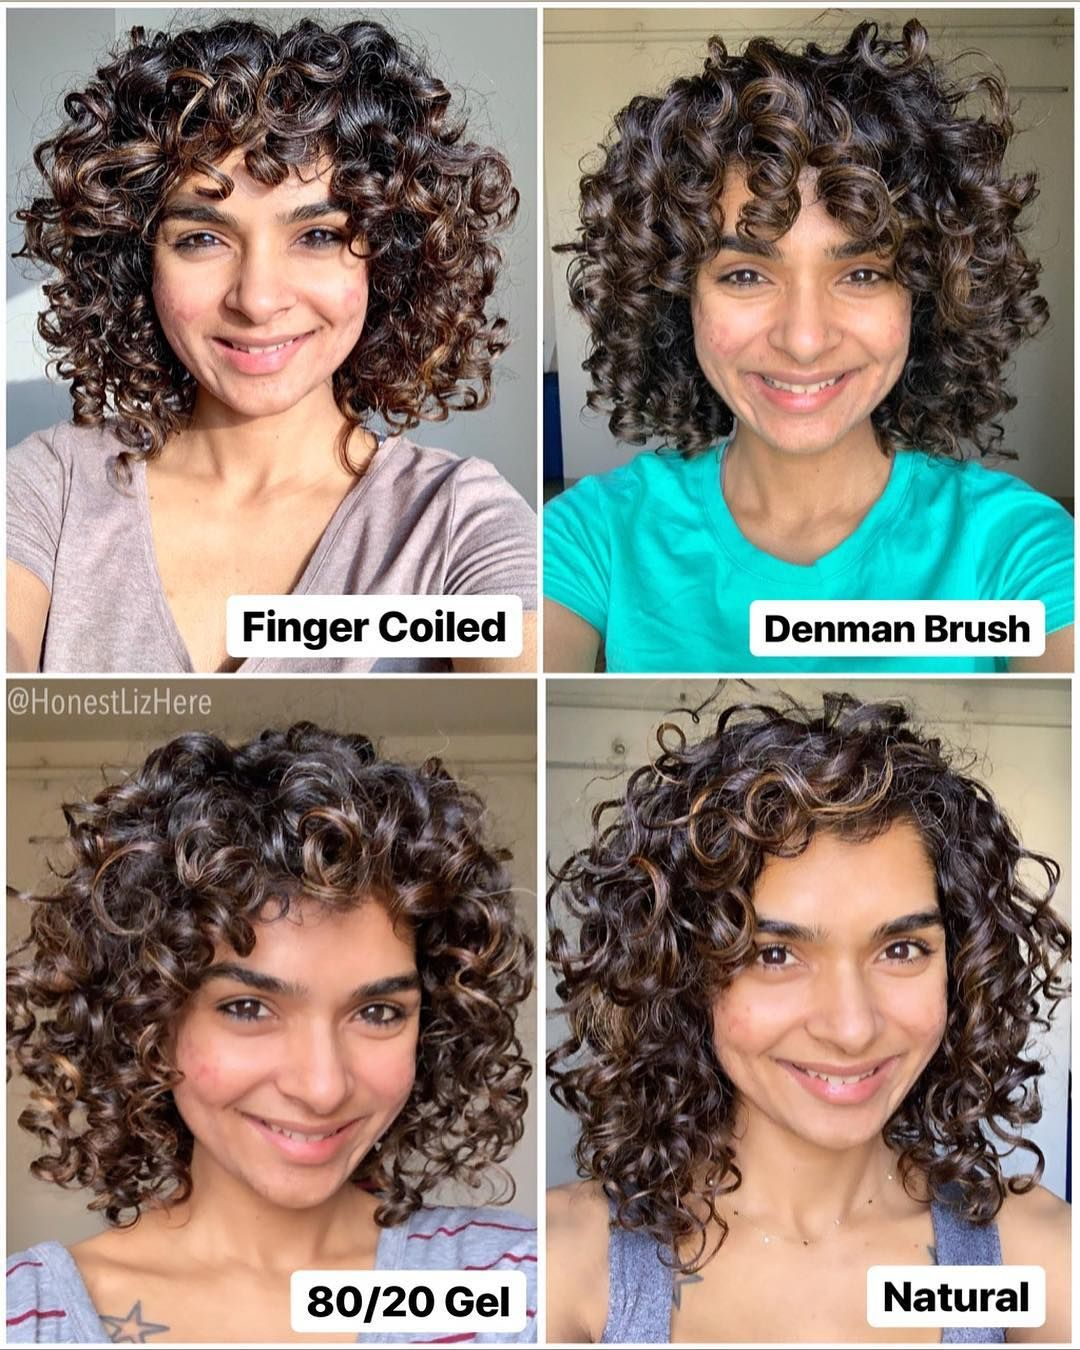 When I Was Looking For Something To Help Form Curl Clumps There It Was Learn How Denman Brush H Curly Hair Tips Curly Hair Styles Naturally Curly Hair Styles